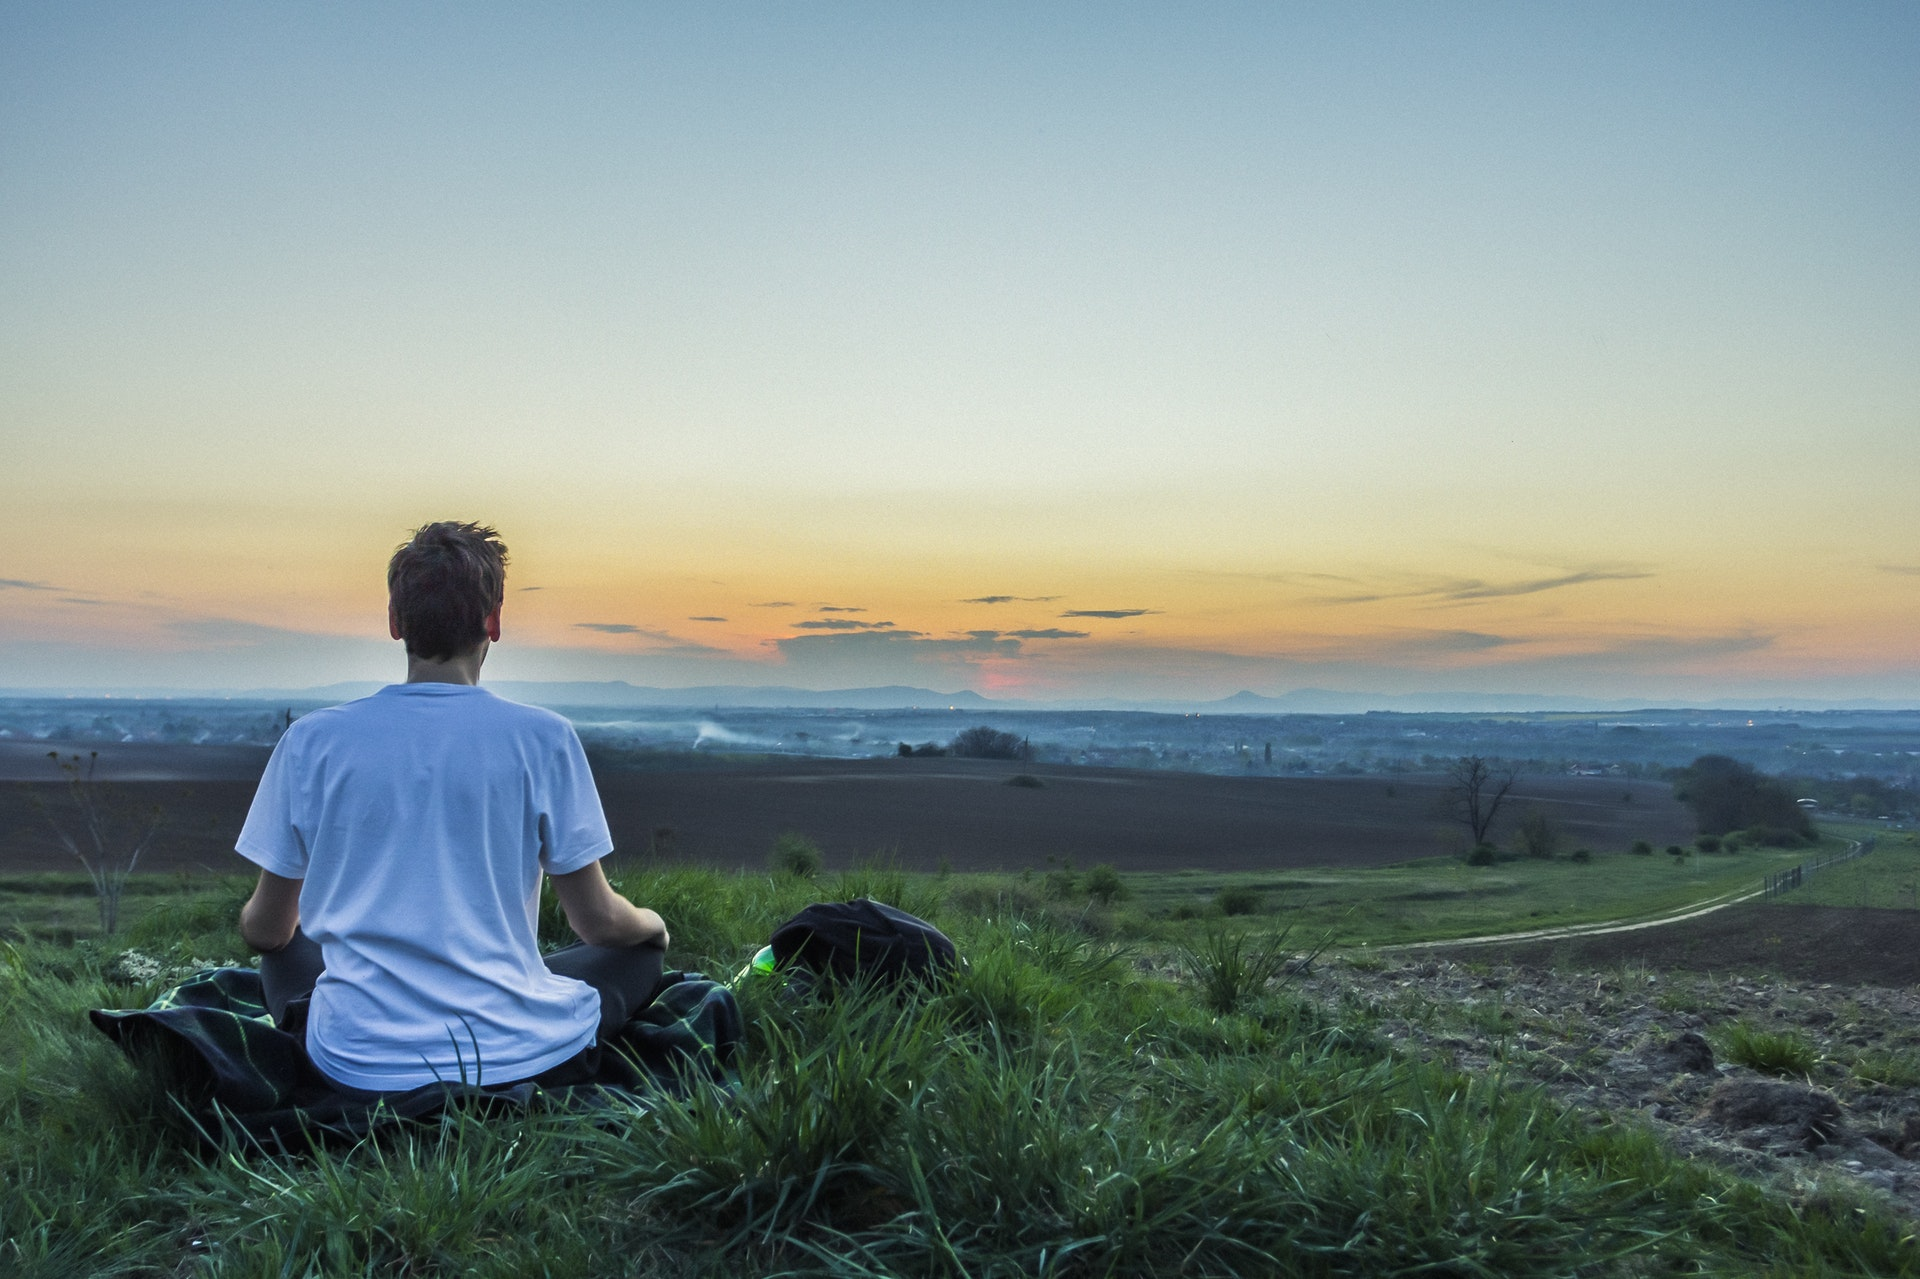 person meditating with beautiful scenery in background